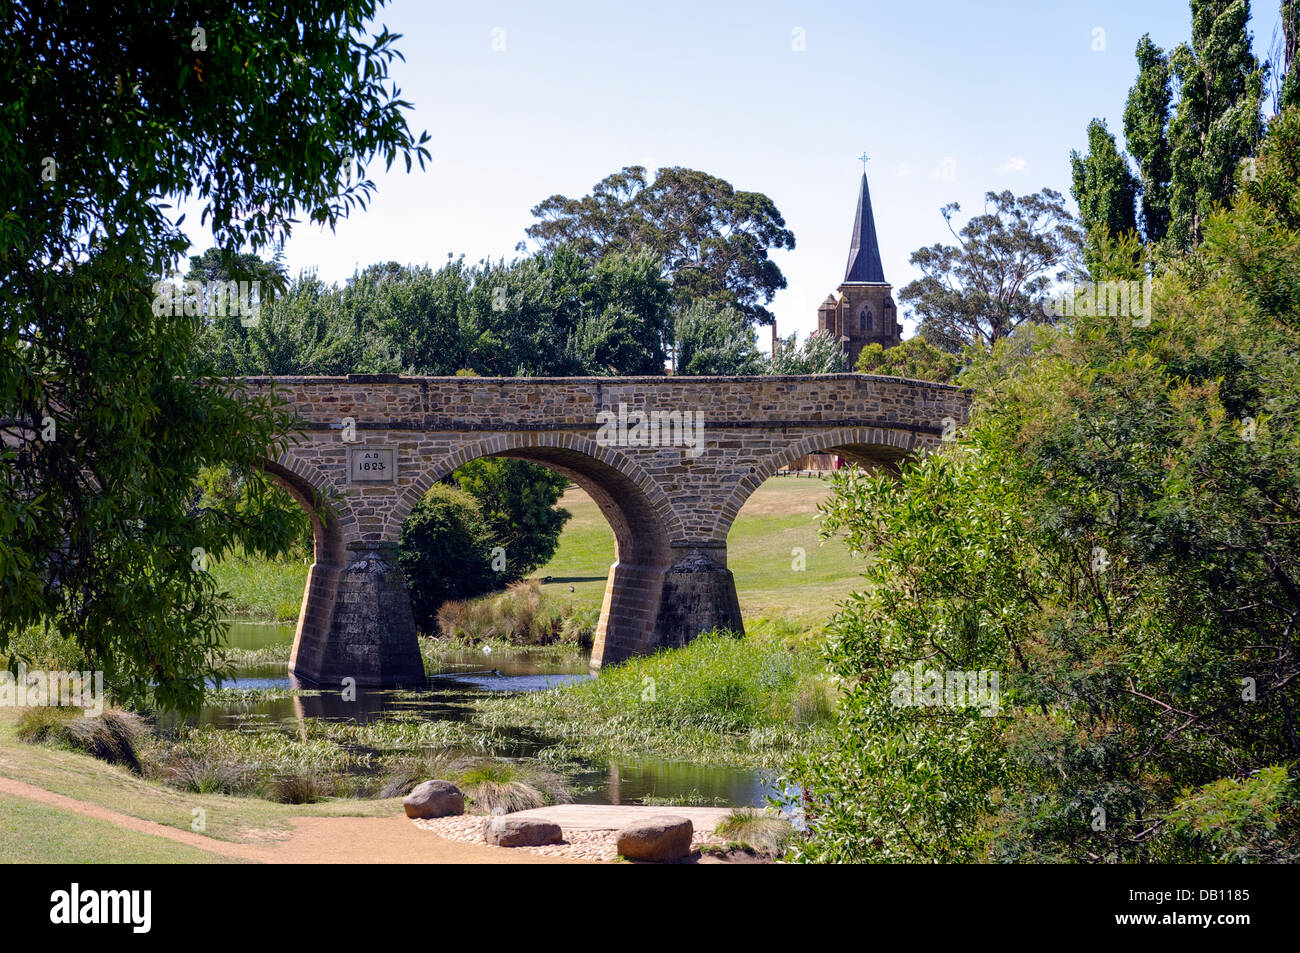 Richmond church and Richmond bridge, Tasmania. This is the oldest bridge in Australia, built by convicts in 1823. - Stock Image